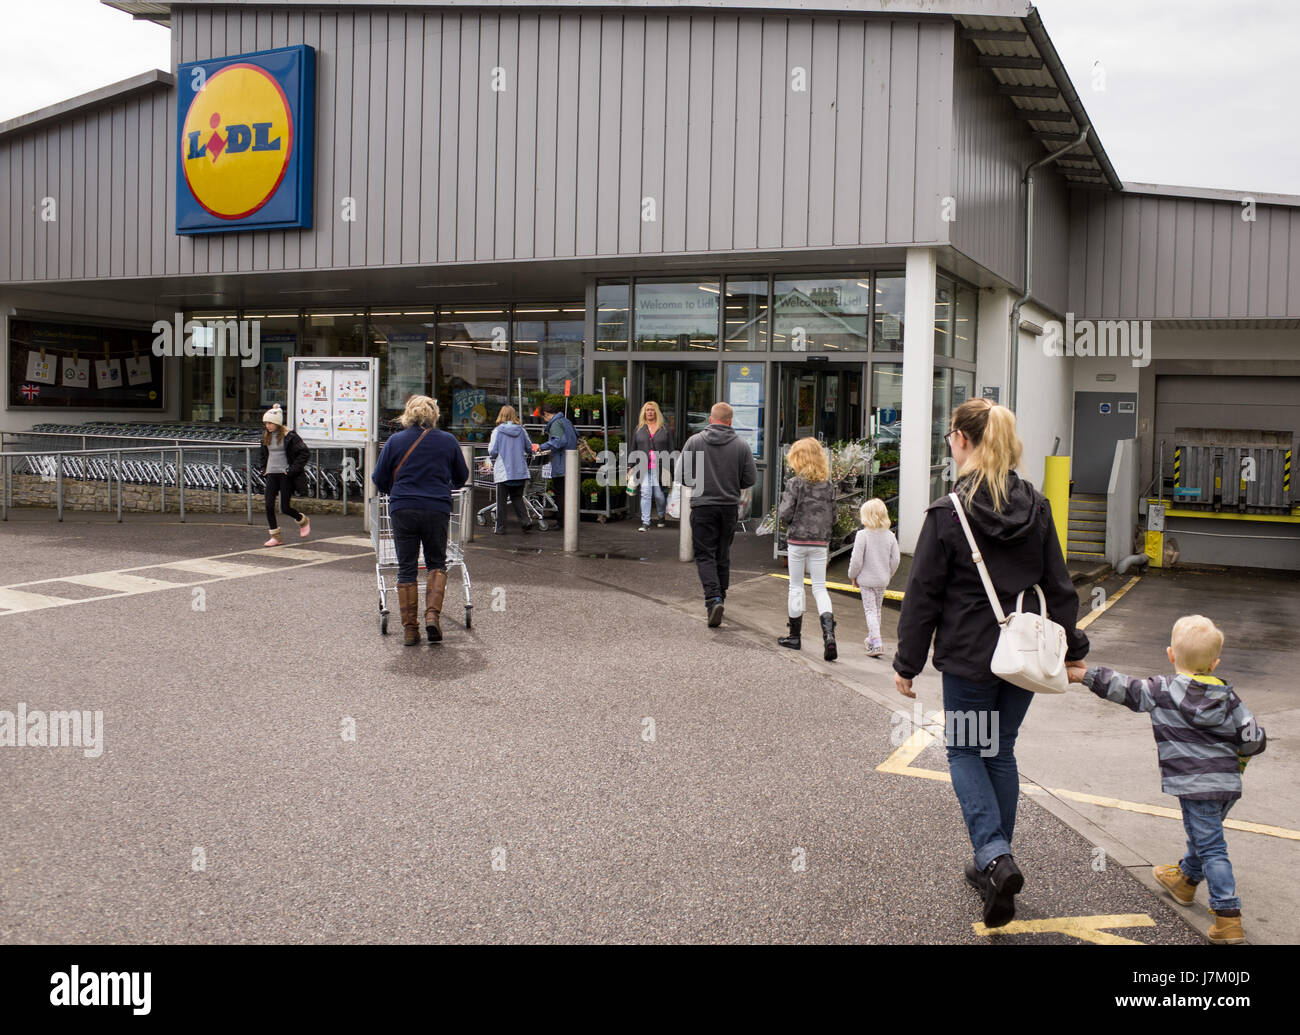 Lidl supermarket in the UK Stock Photo